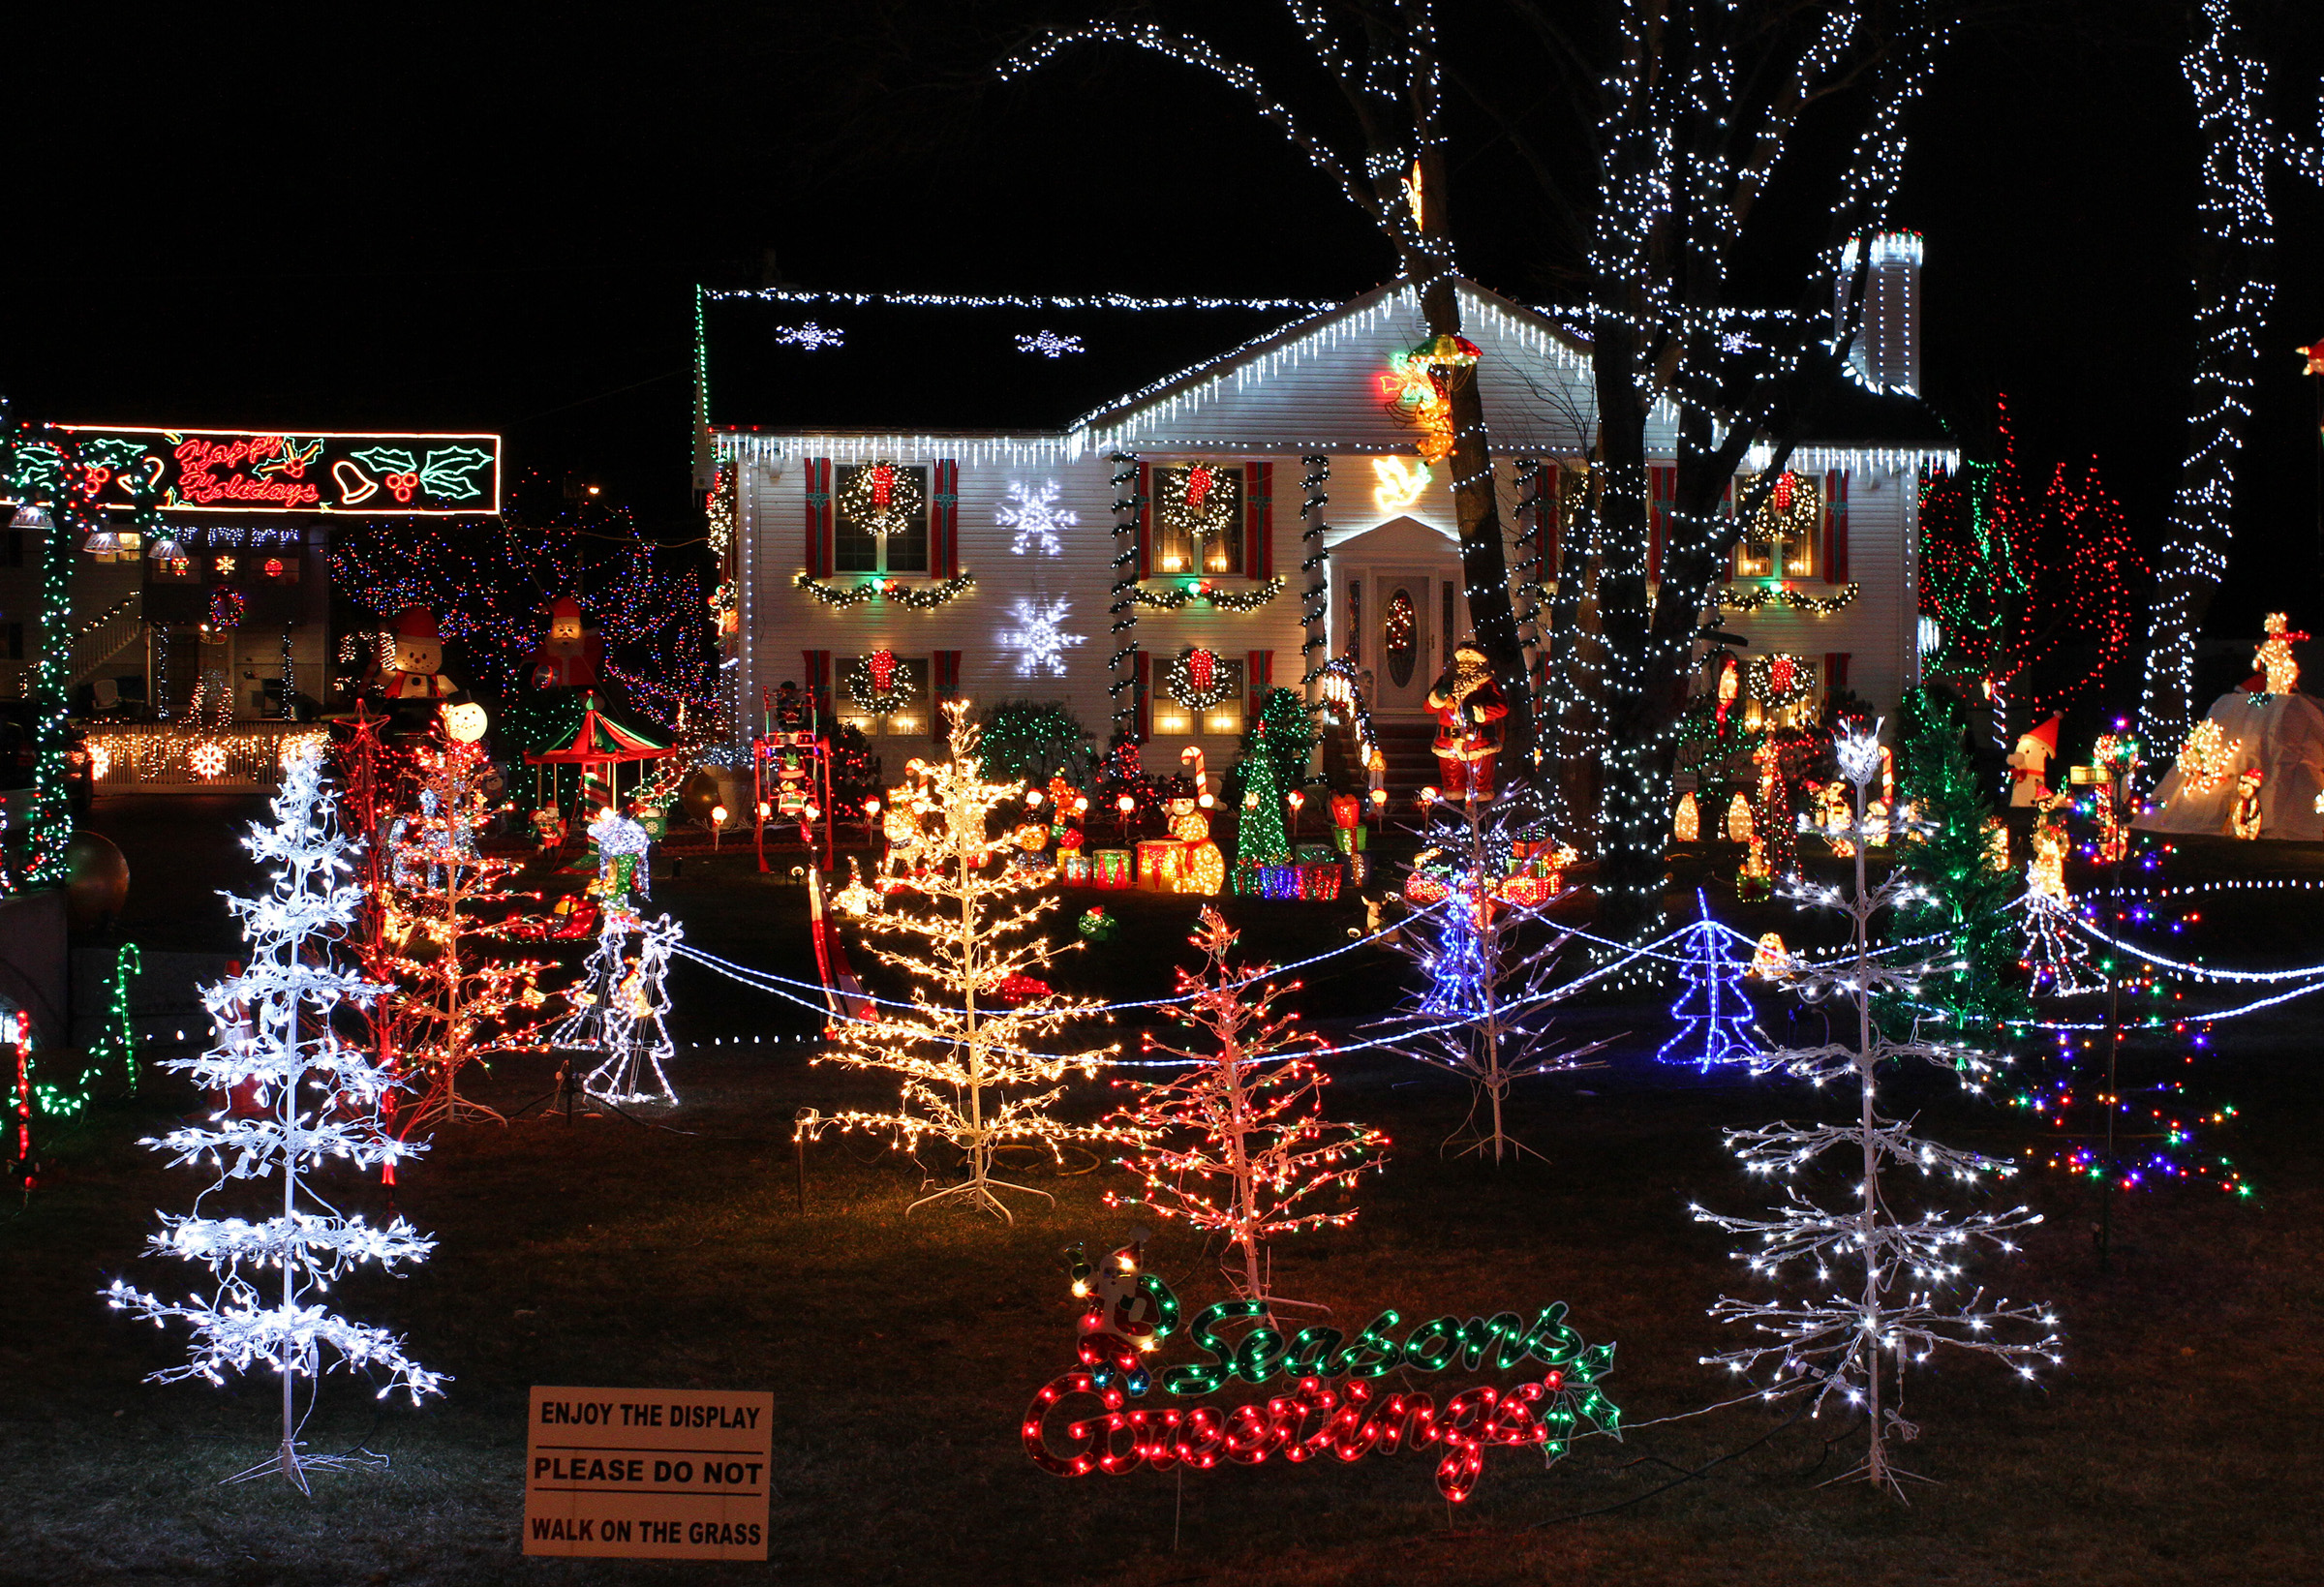 House With Lights This Christmas